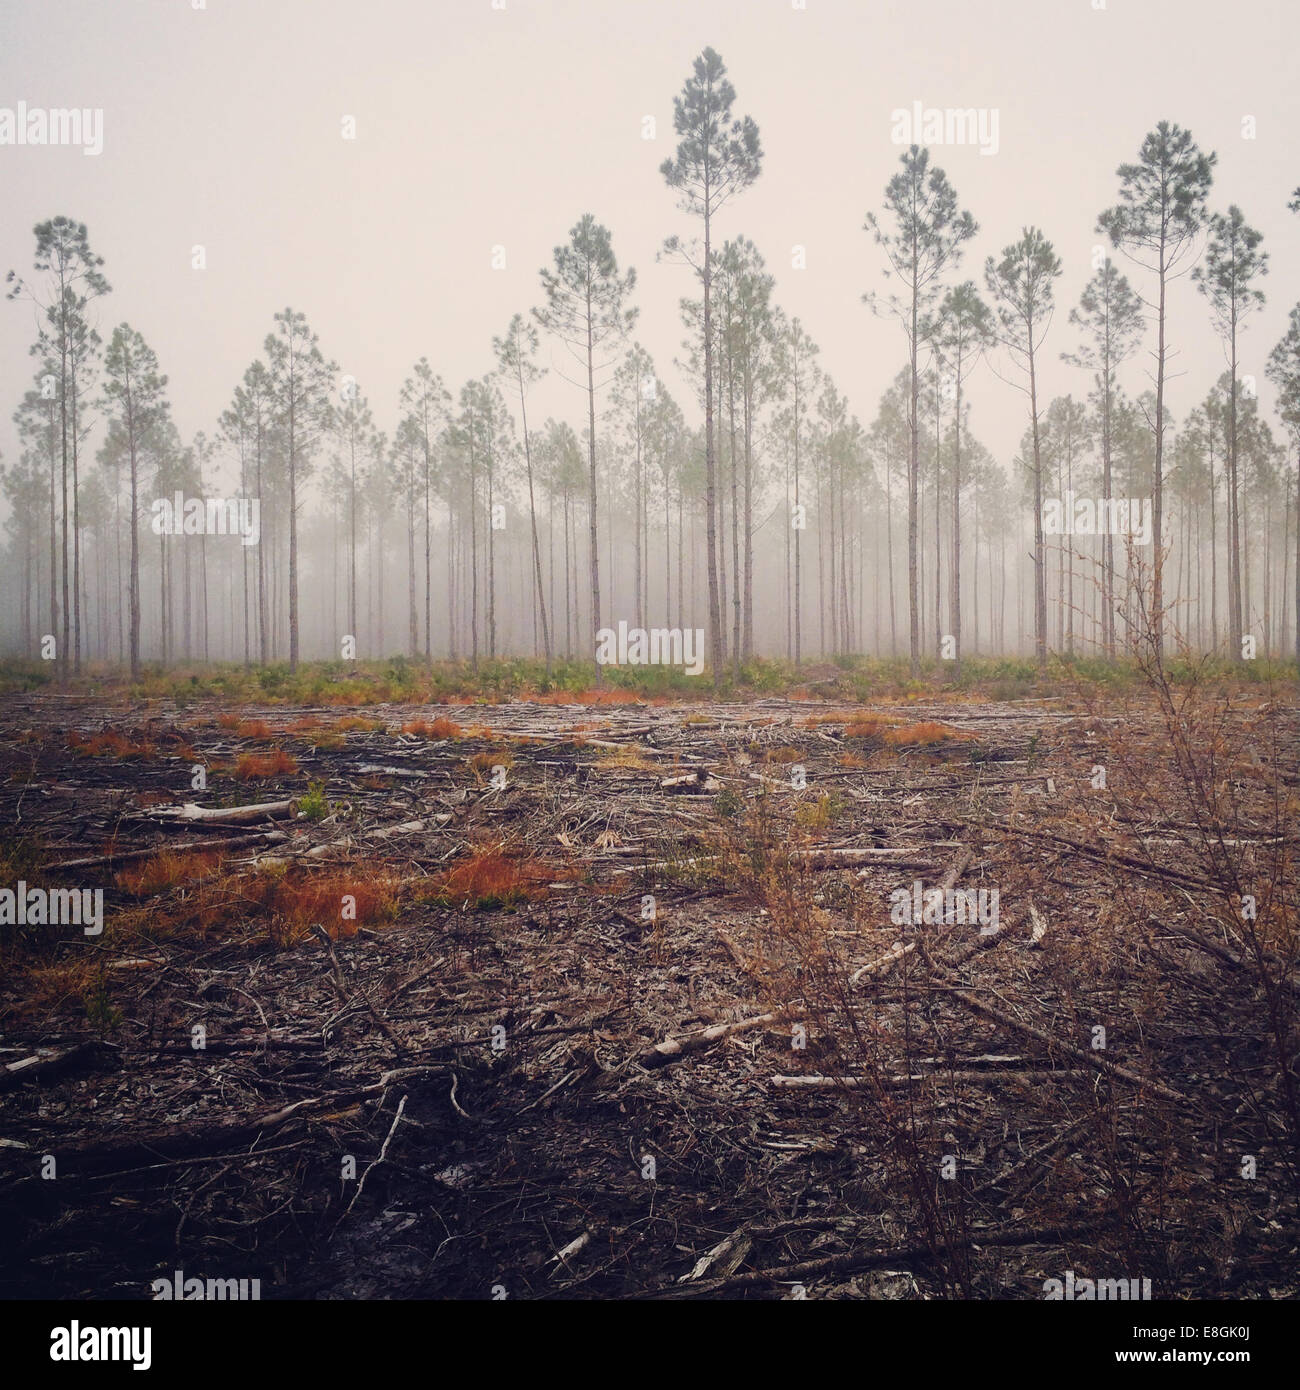 View of pine tree in fog, America, USA Stock Photo